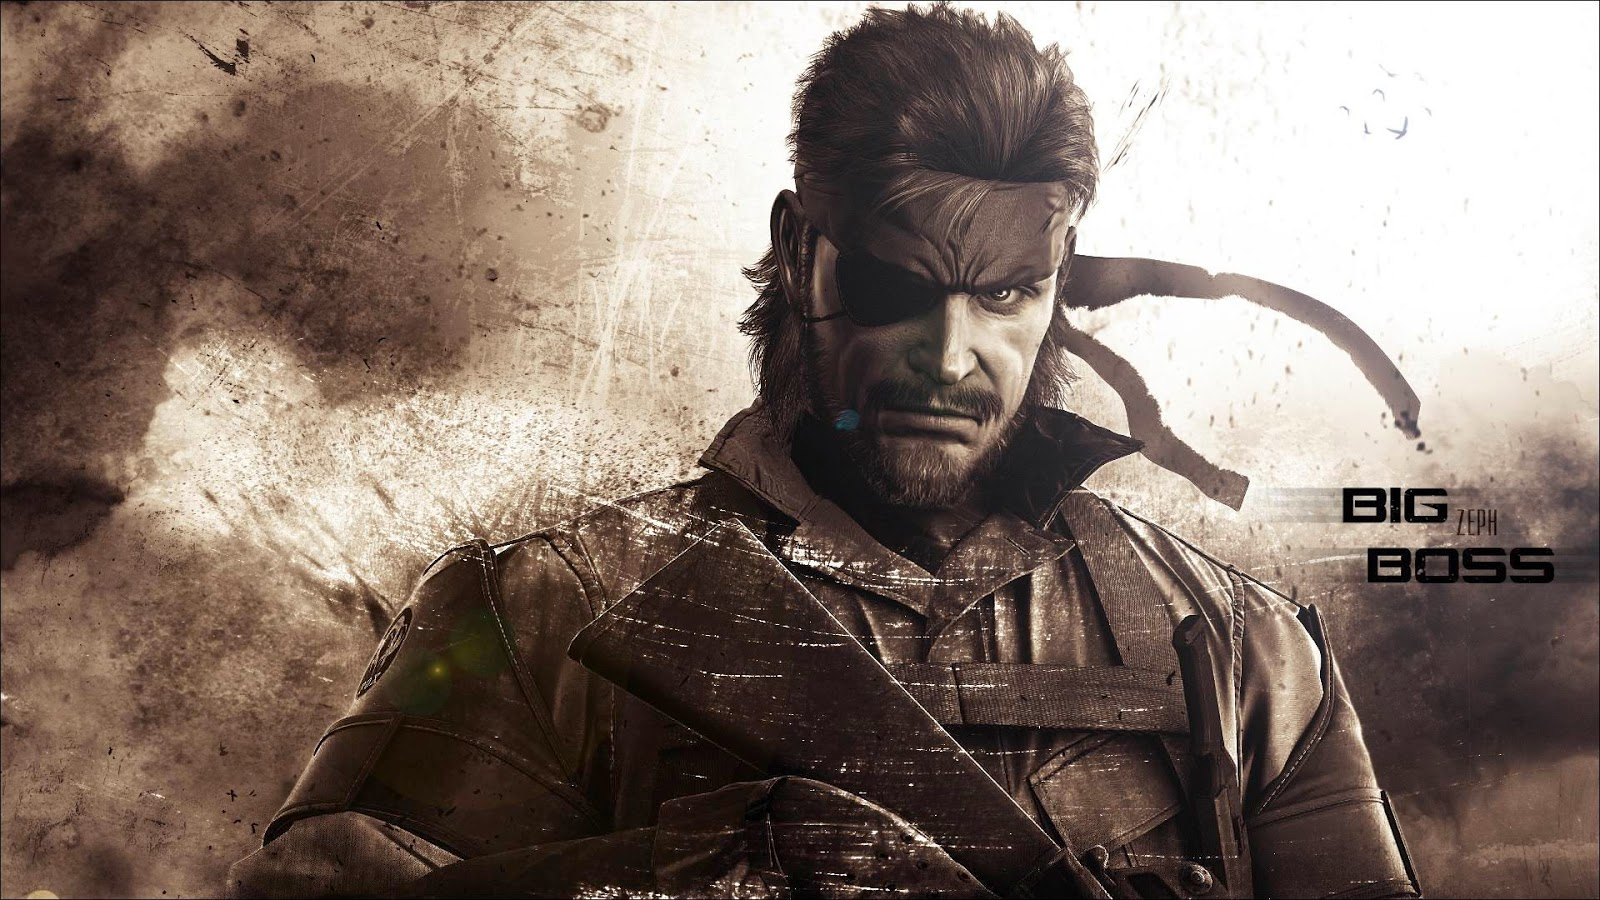 metal gear hd wallpapers - photo #27